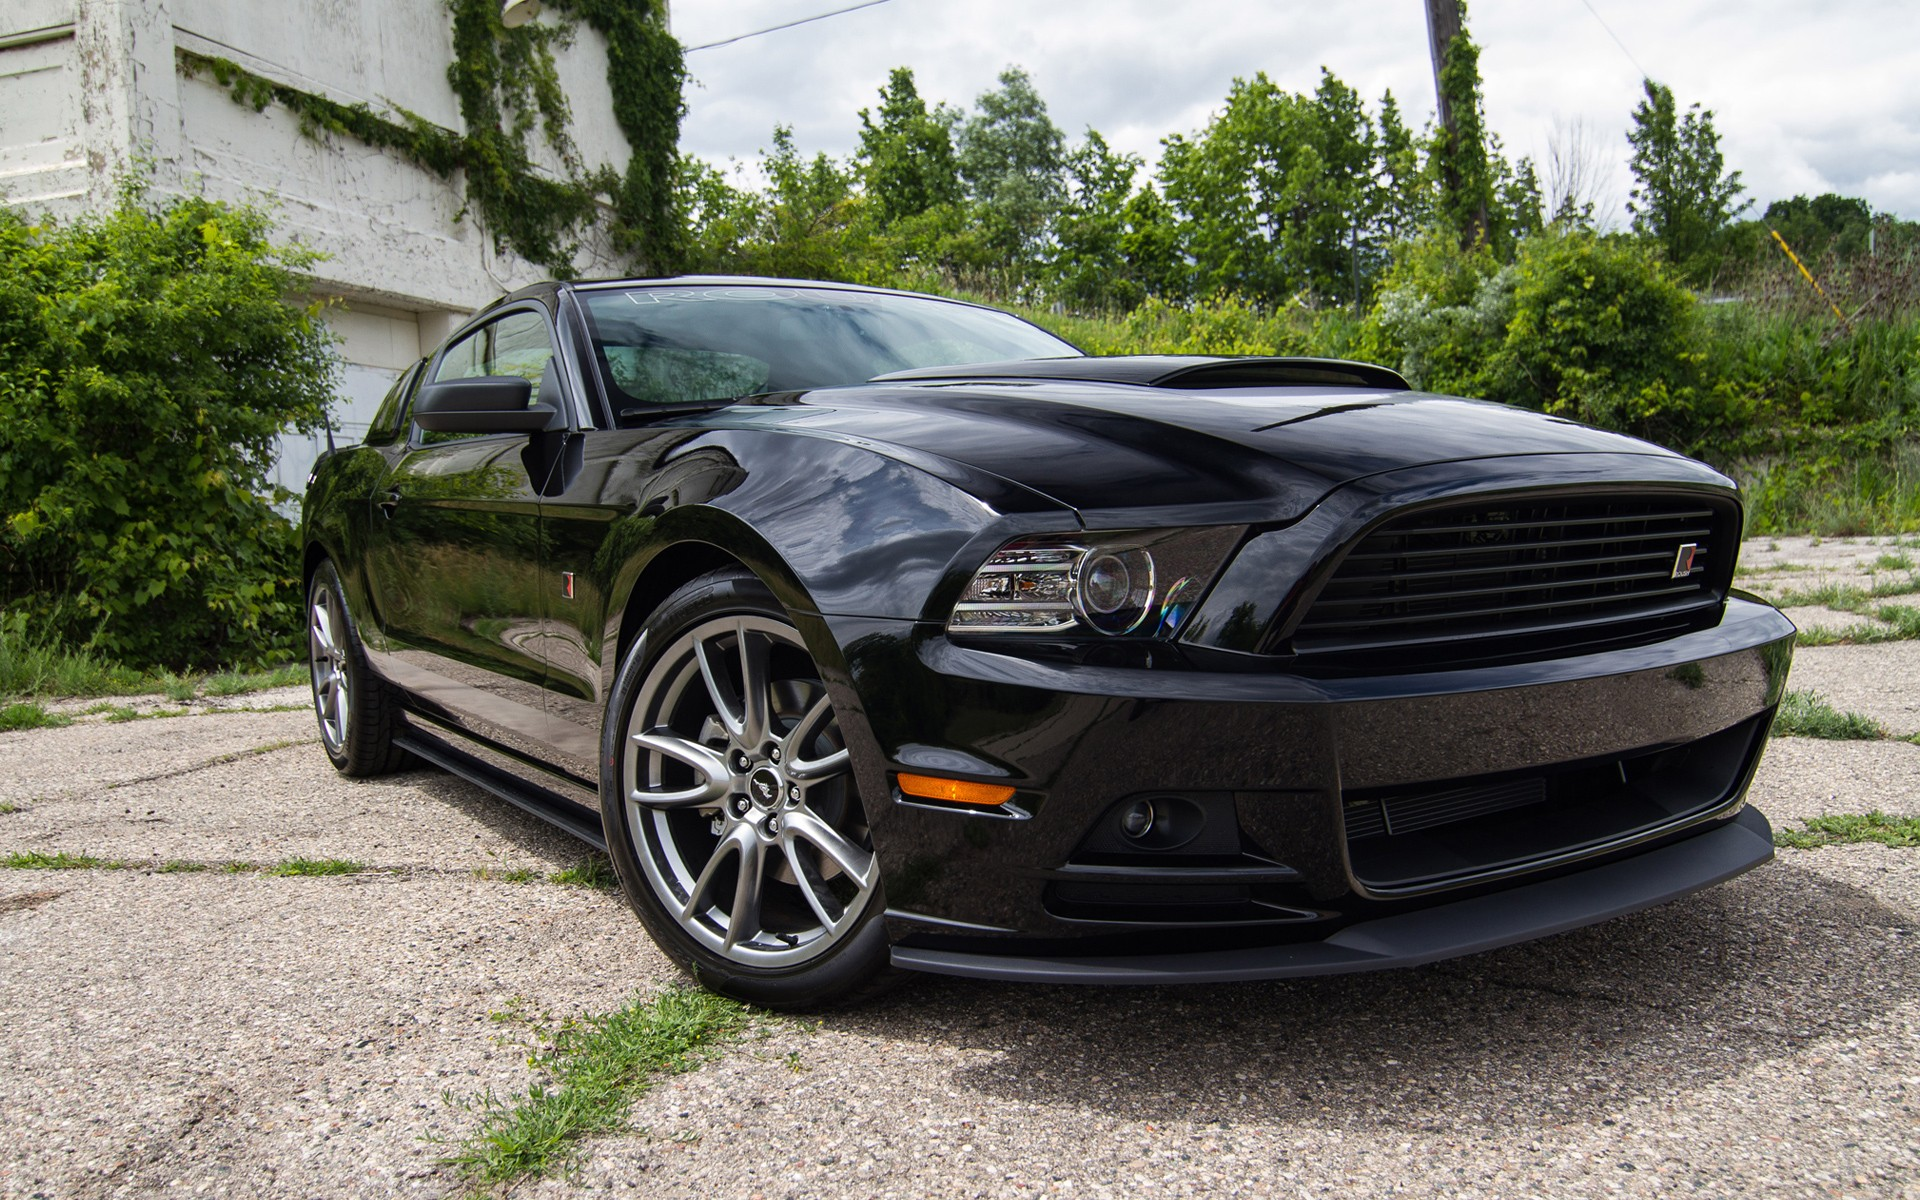 Ford Mustang Roush >> 2013 Roush RS Mustang Wallpaper in 1920x1200 Resolution